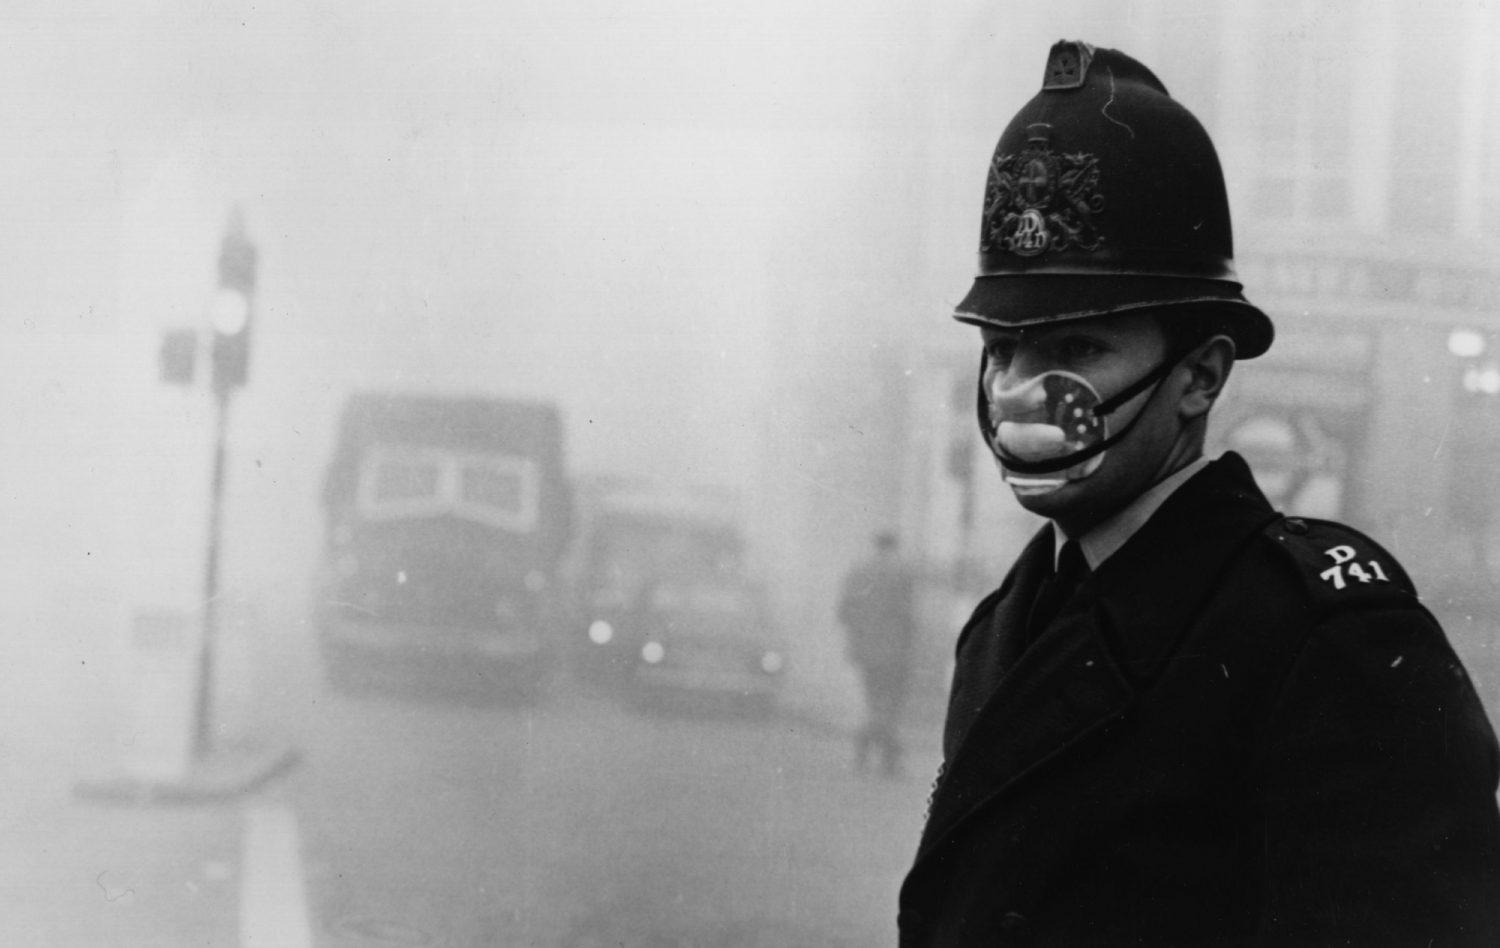 A London police officer wears a mask for protection against the Great Smog of 1952.